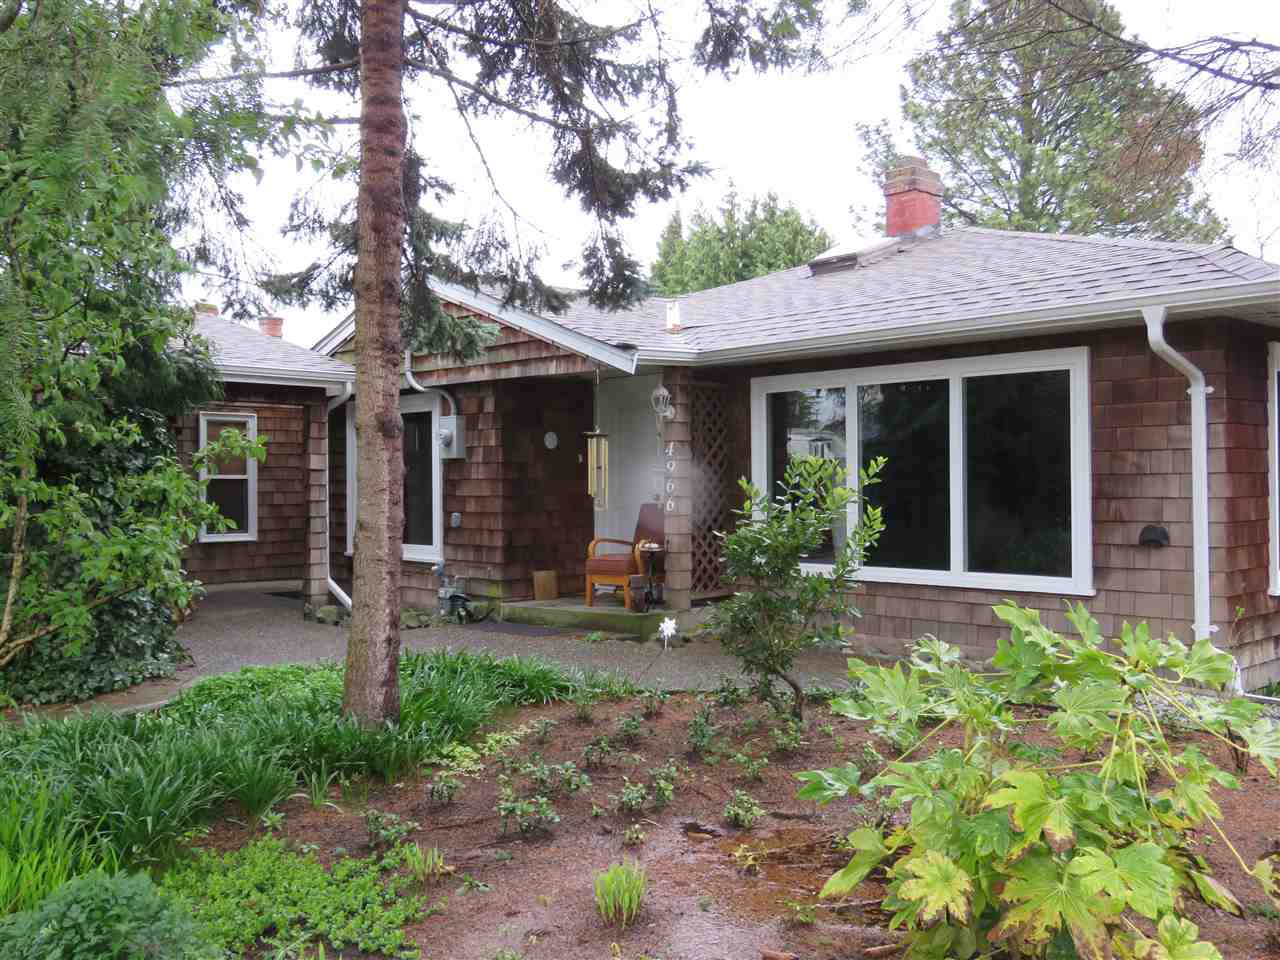 Main Photo: 4966 WESTMINSTER Avenue in Delta: Hawthorne House for sale (Ladner)  : MLS®# R2257118